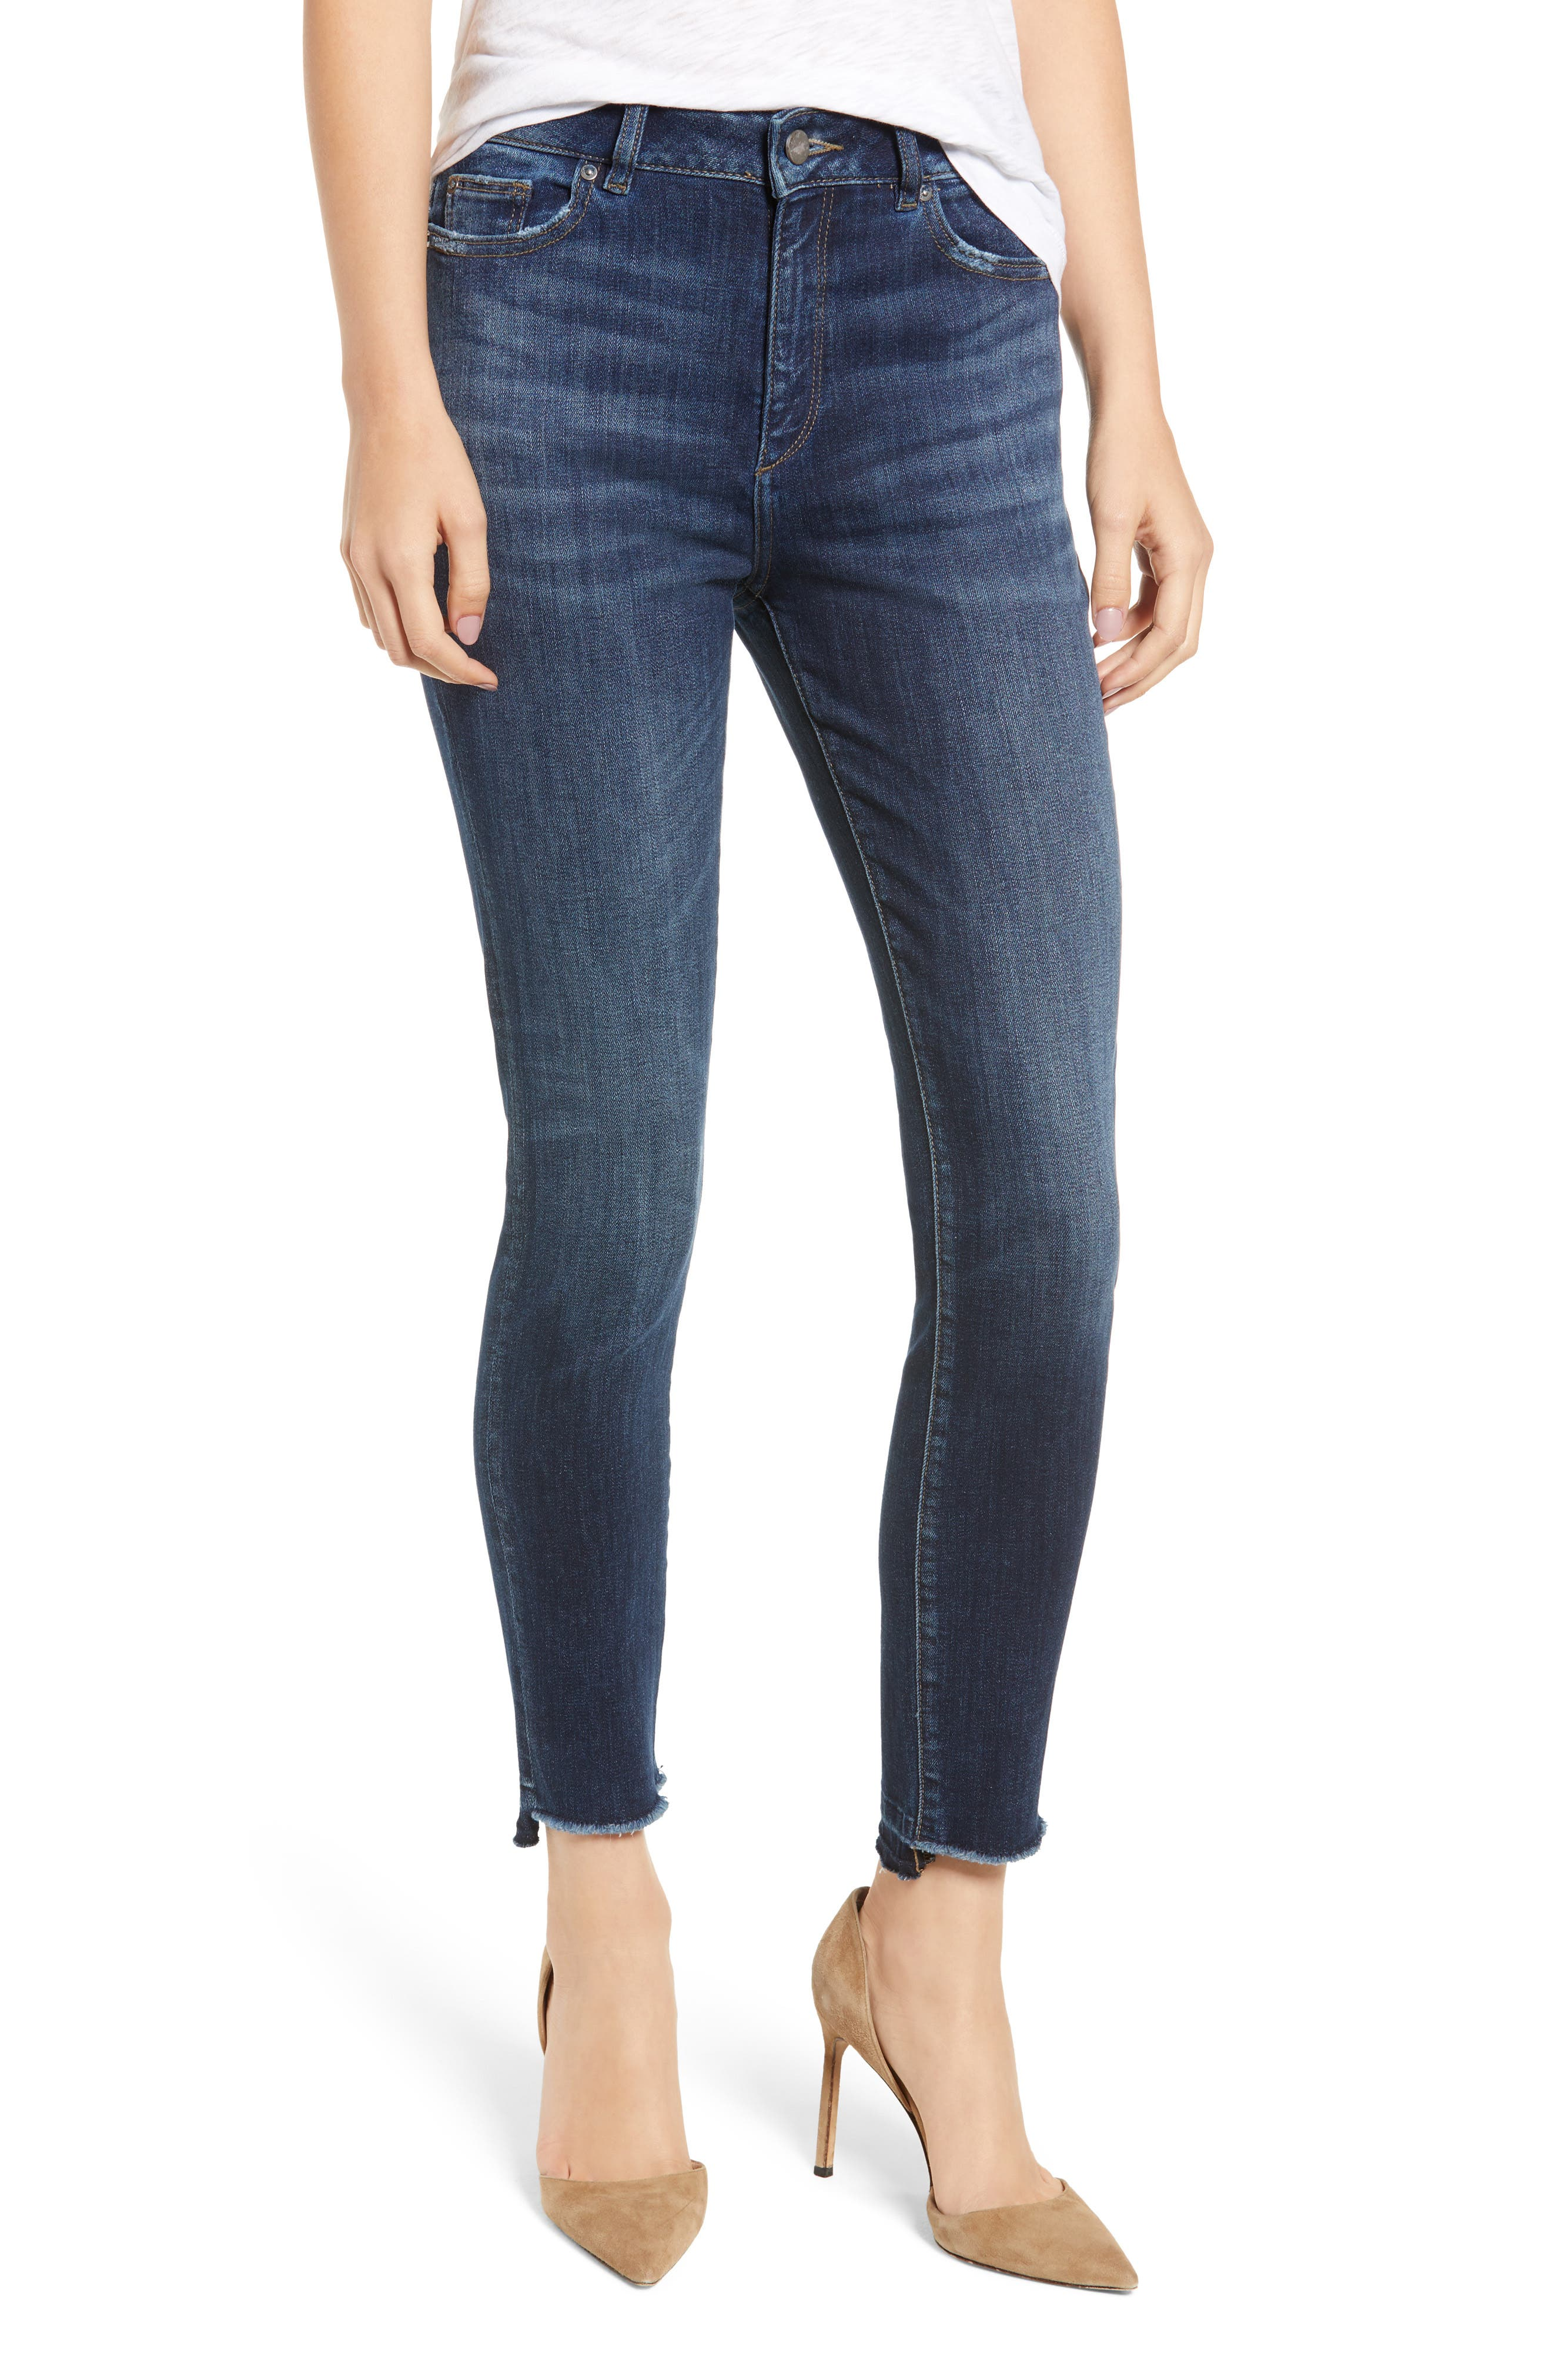 Chrissy Ultra High Waist Ankle Skinny Jeans,                             Main thumbnail 1, color,                             WAKELY